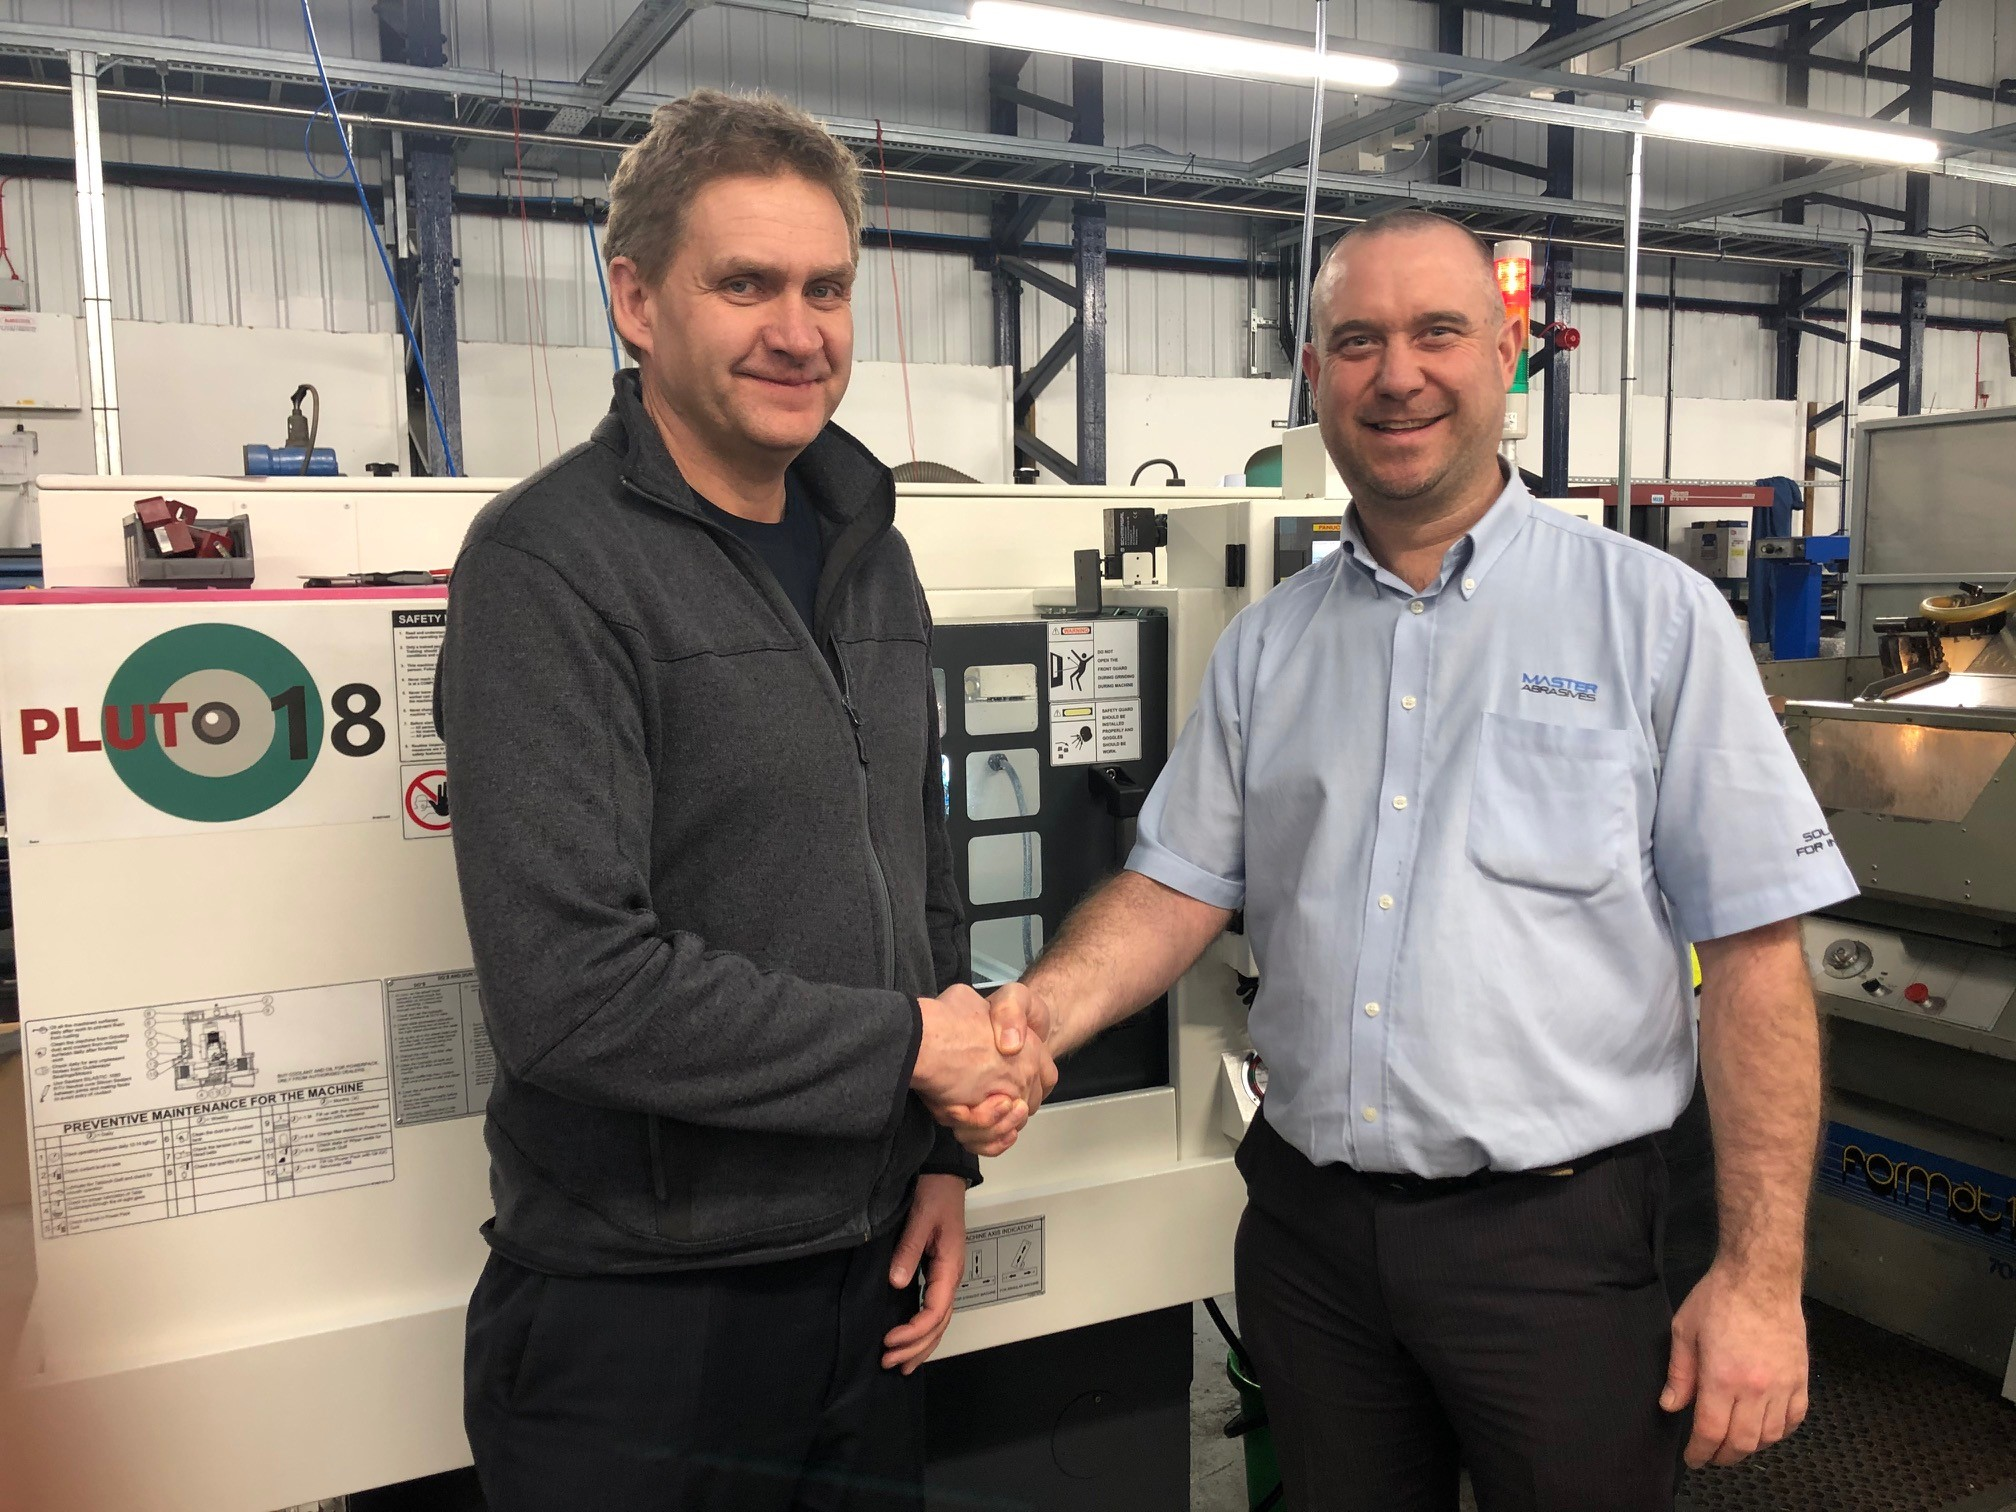 Andreas Hohmann, Managing Director at Total Carbide, and Ian Meredith, Applications Engineering Manager at Master Abrasives